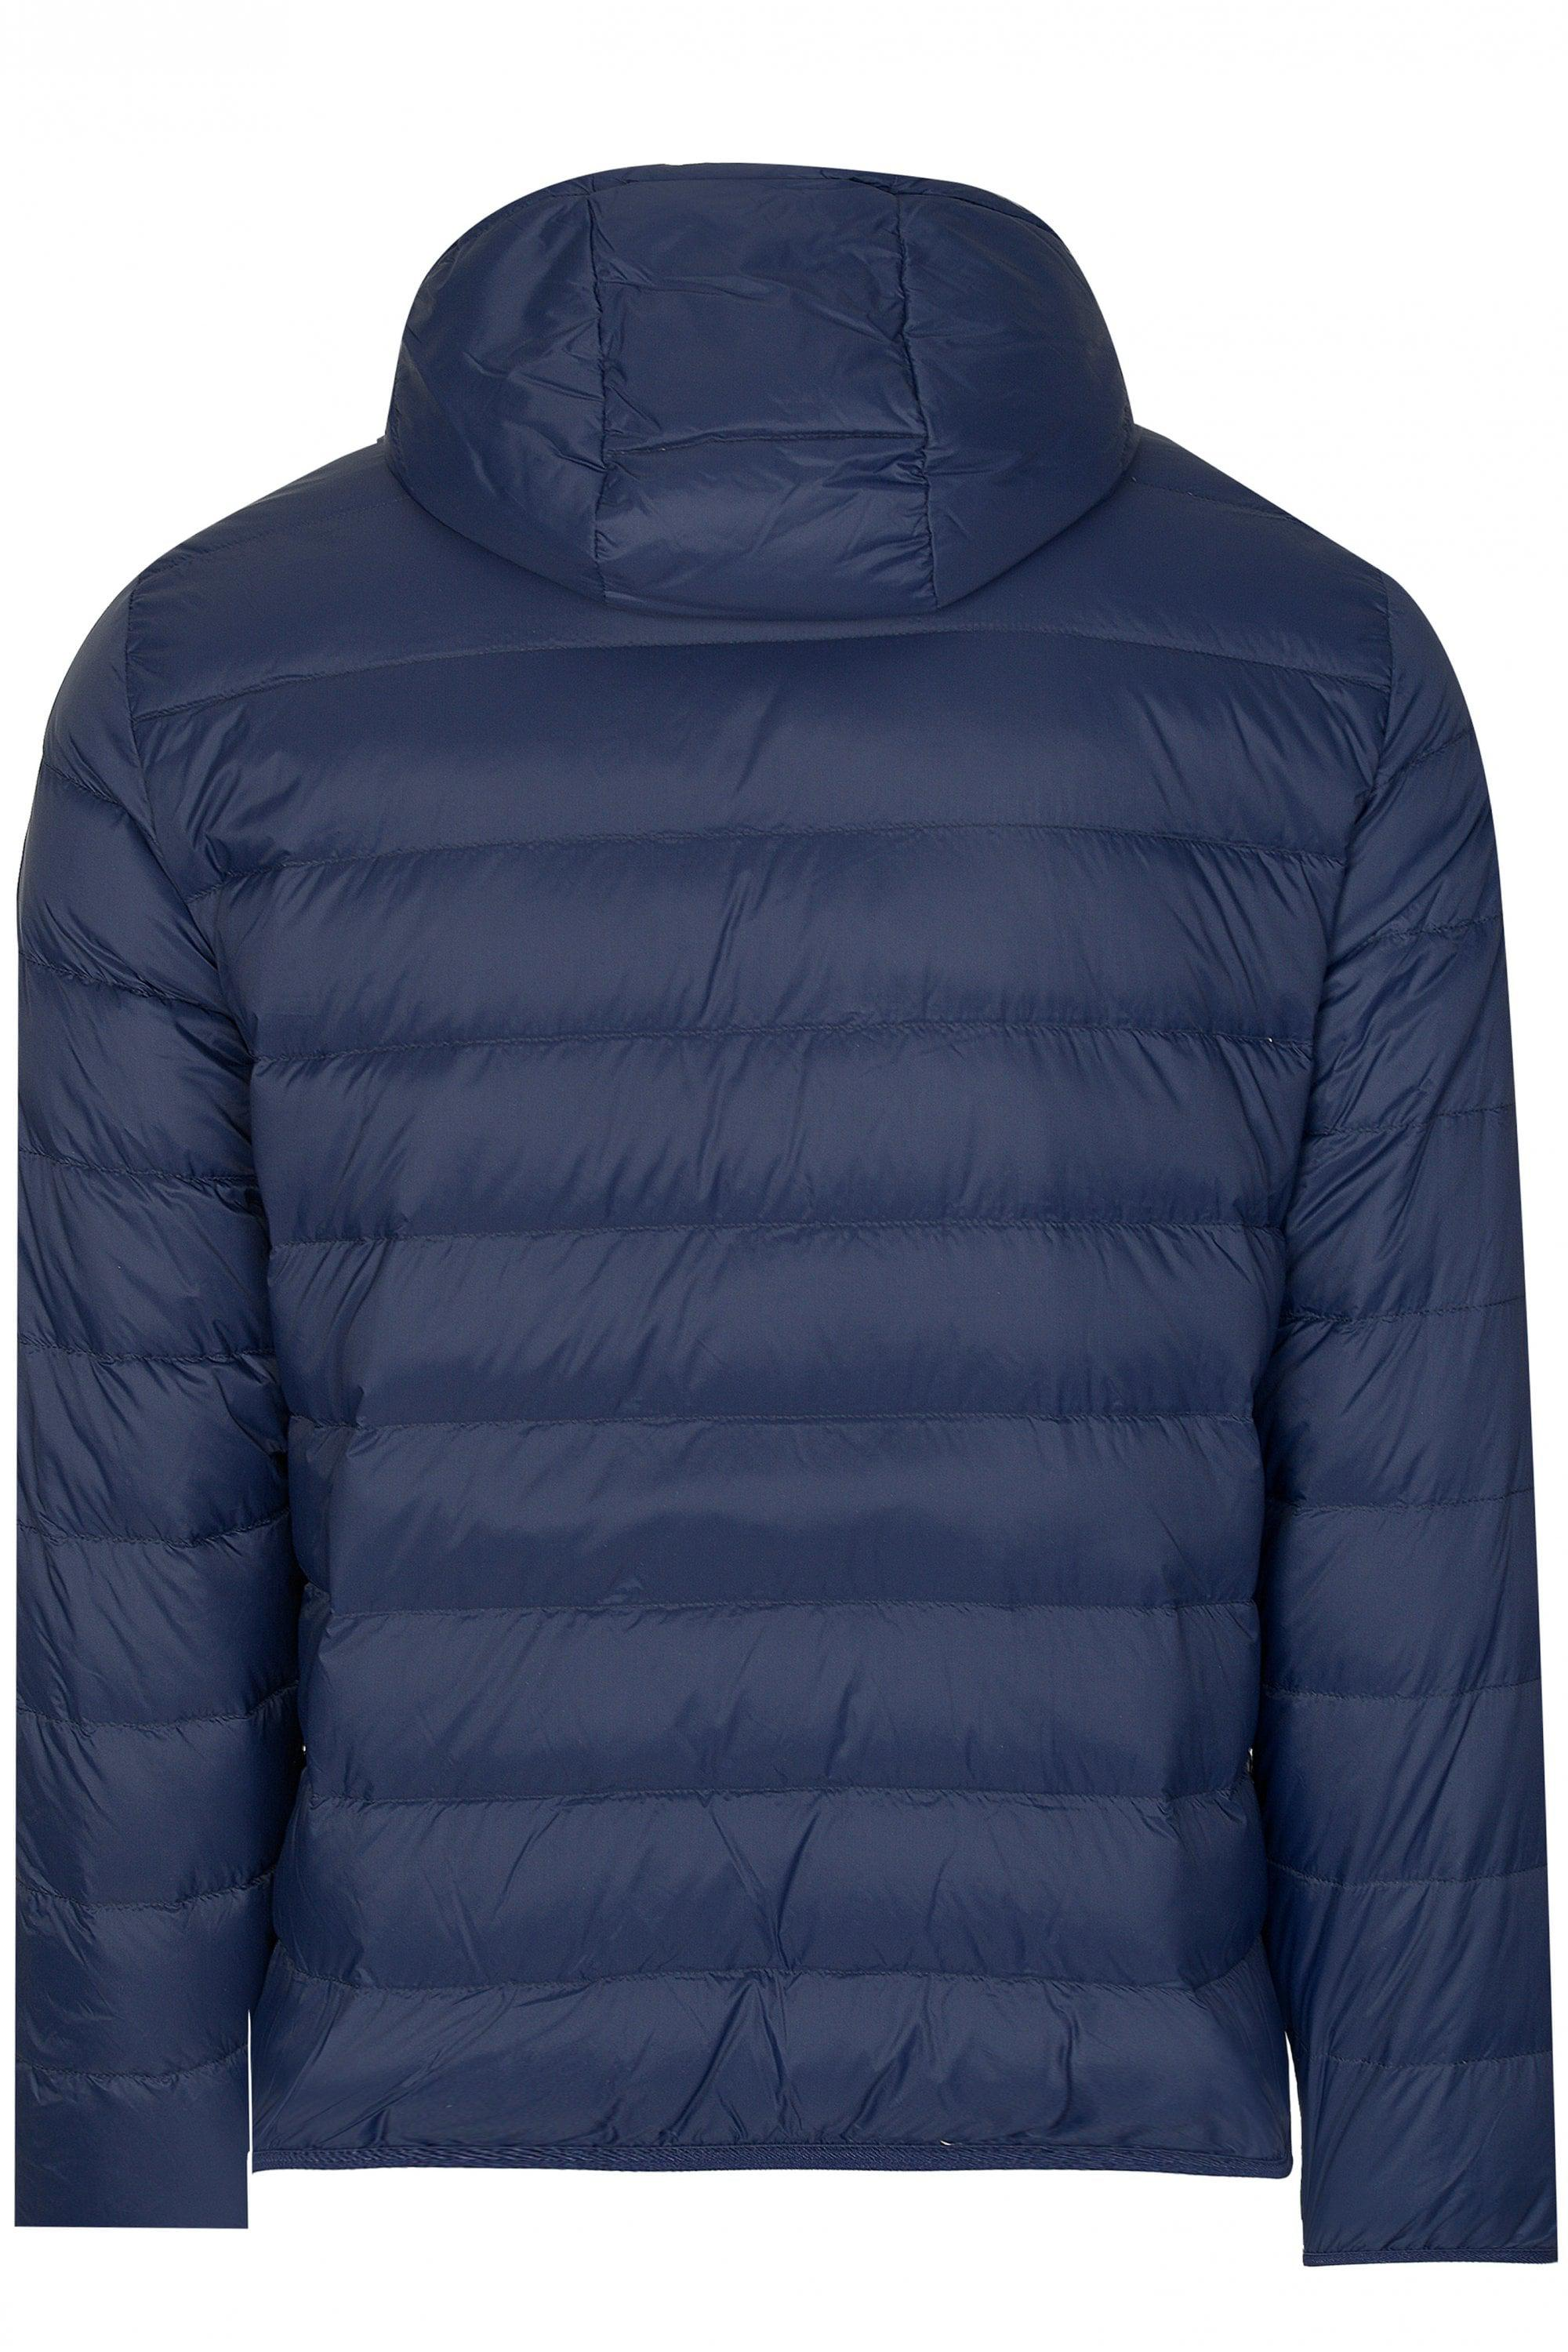 154a85b18 Emporio Armani Reversible Jacket in Blue for Men - Lyst